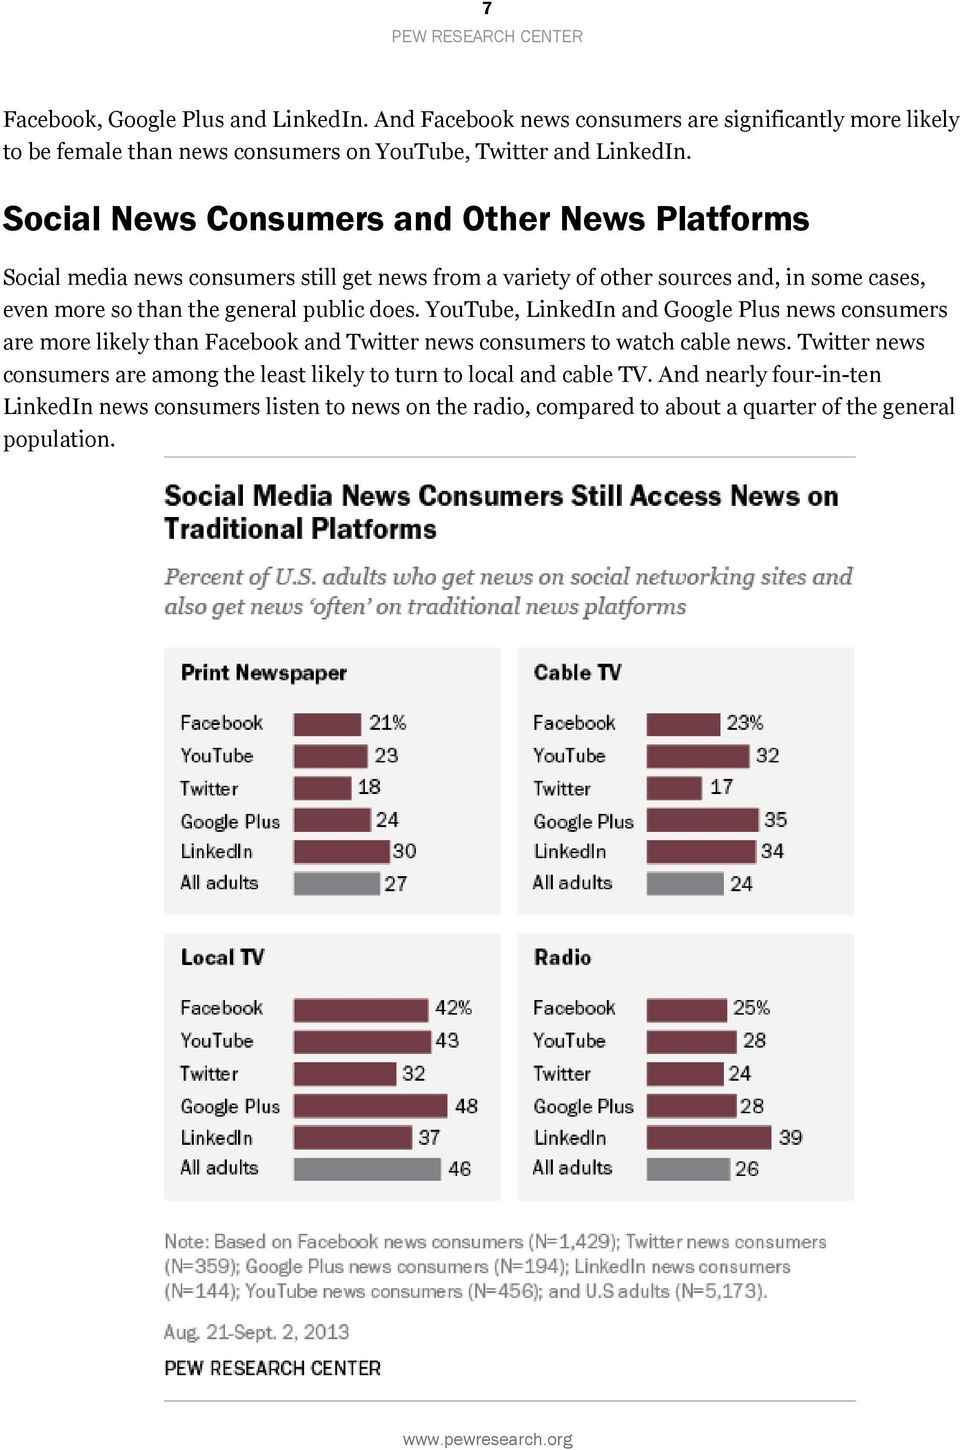 public does. YouTube, LinkedIn and Google Plus news consumers are more likely than Facebook and Twitter news consumers to watch cable news.